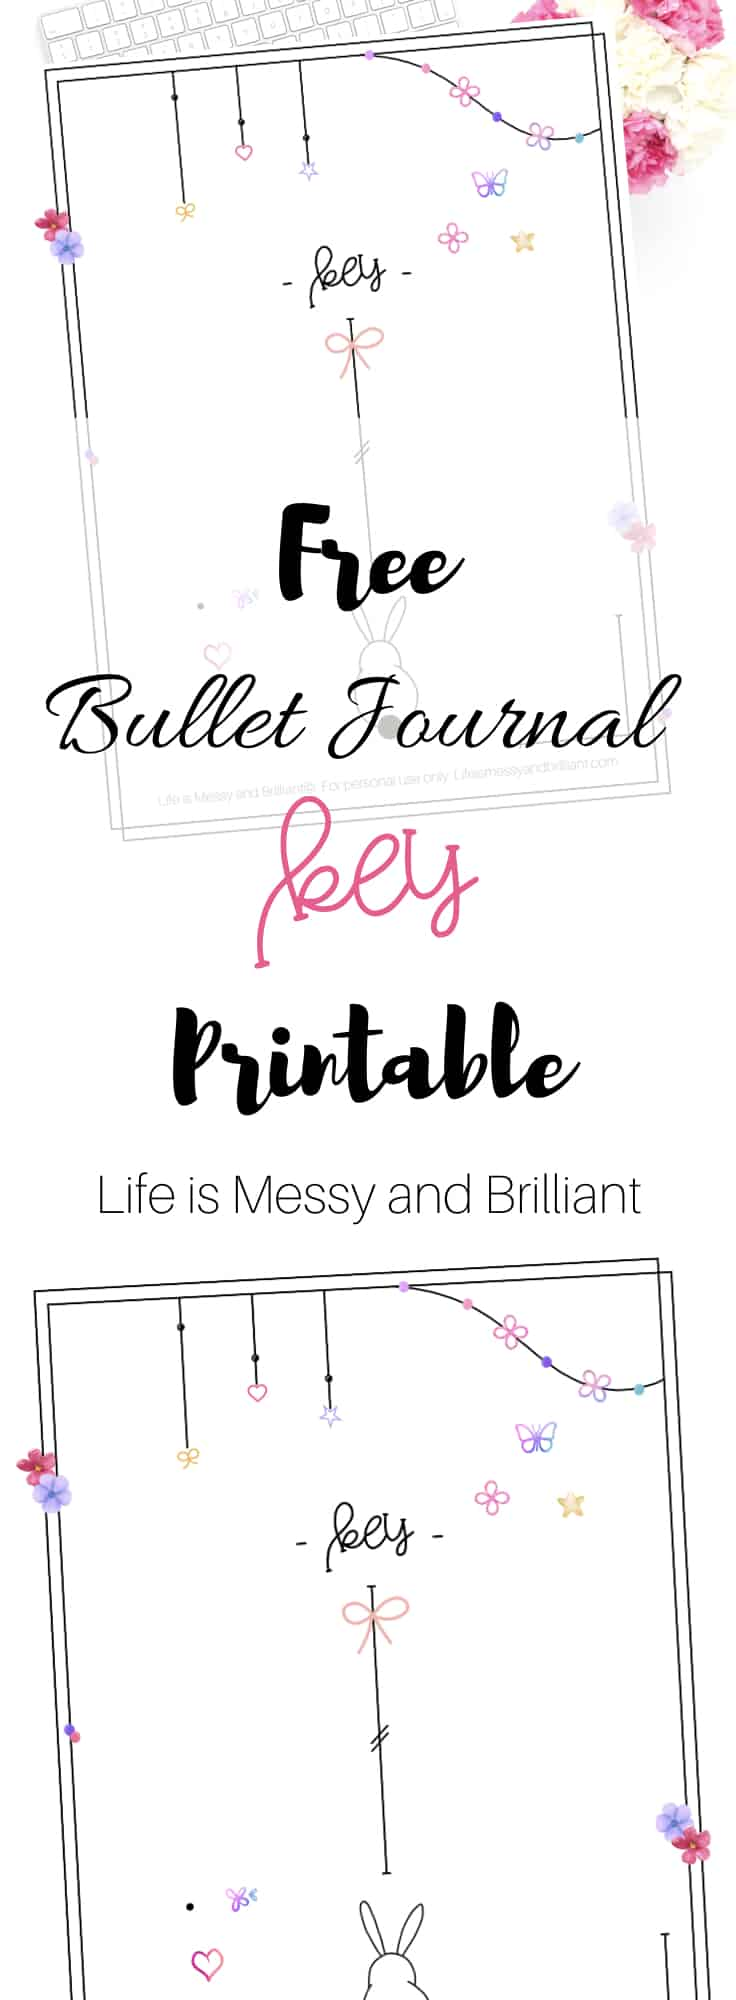 photo relating to Bullet Journal Key Printable called No cost Bullet Magazine Main Printable